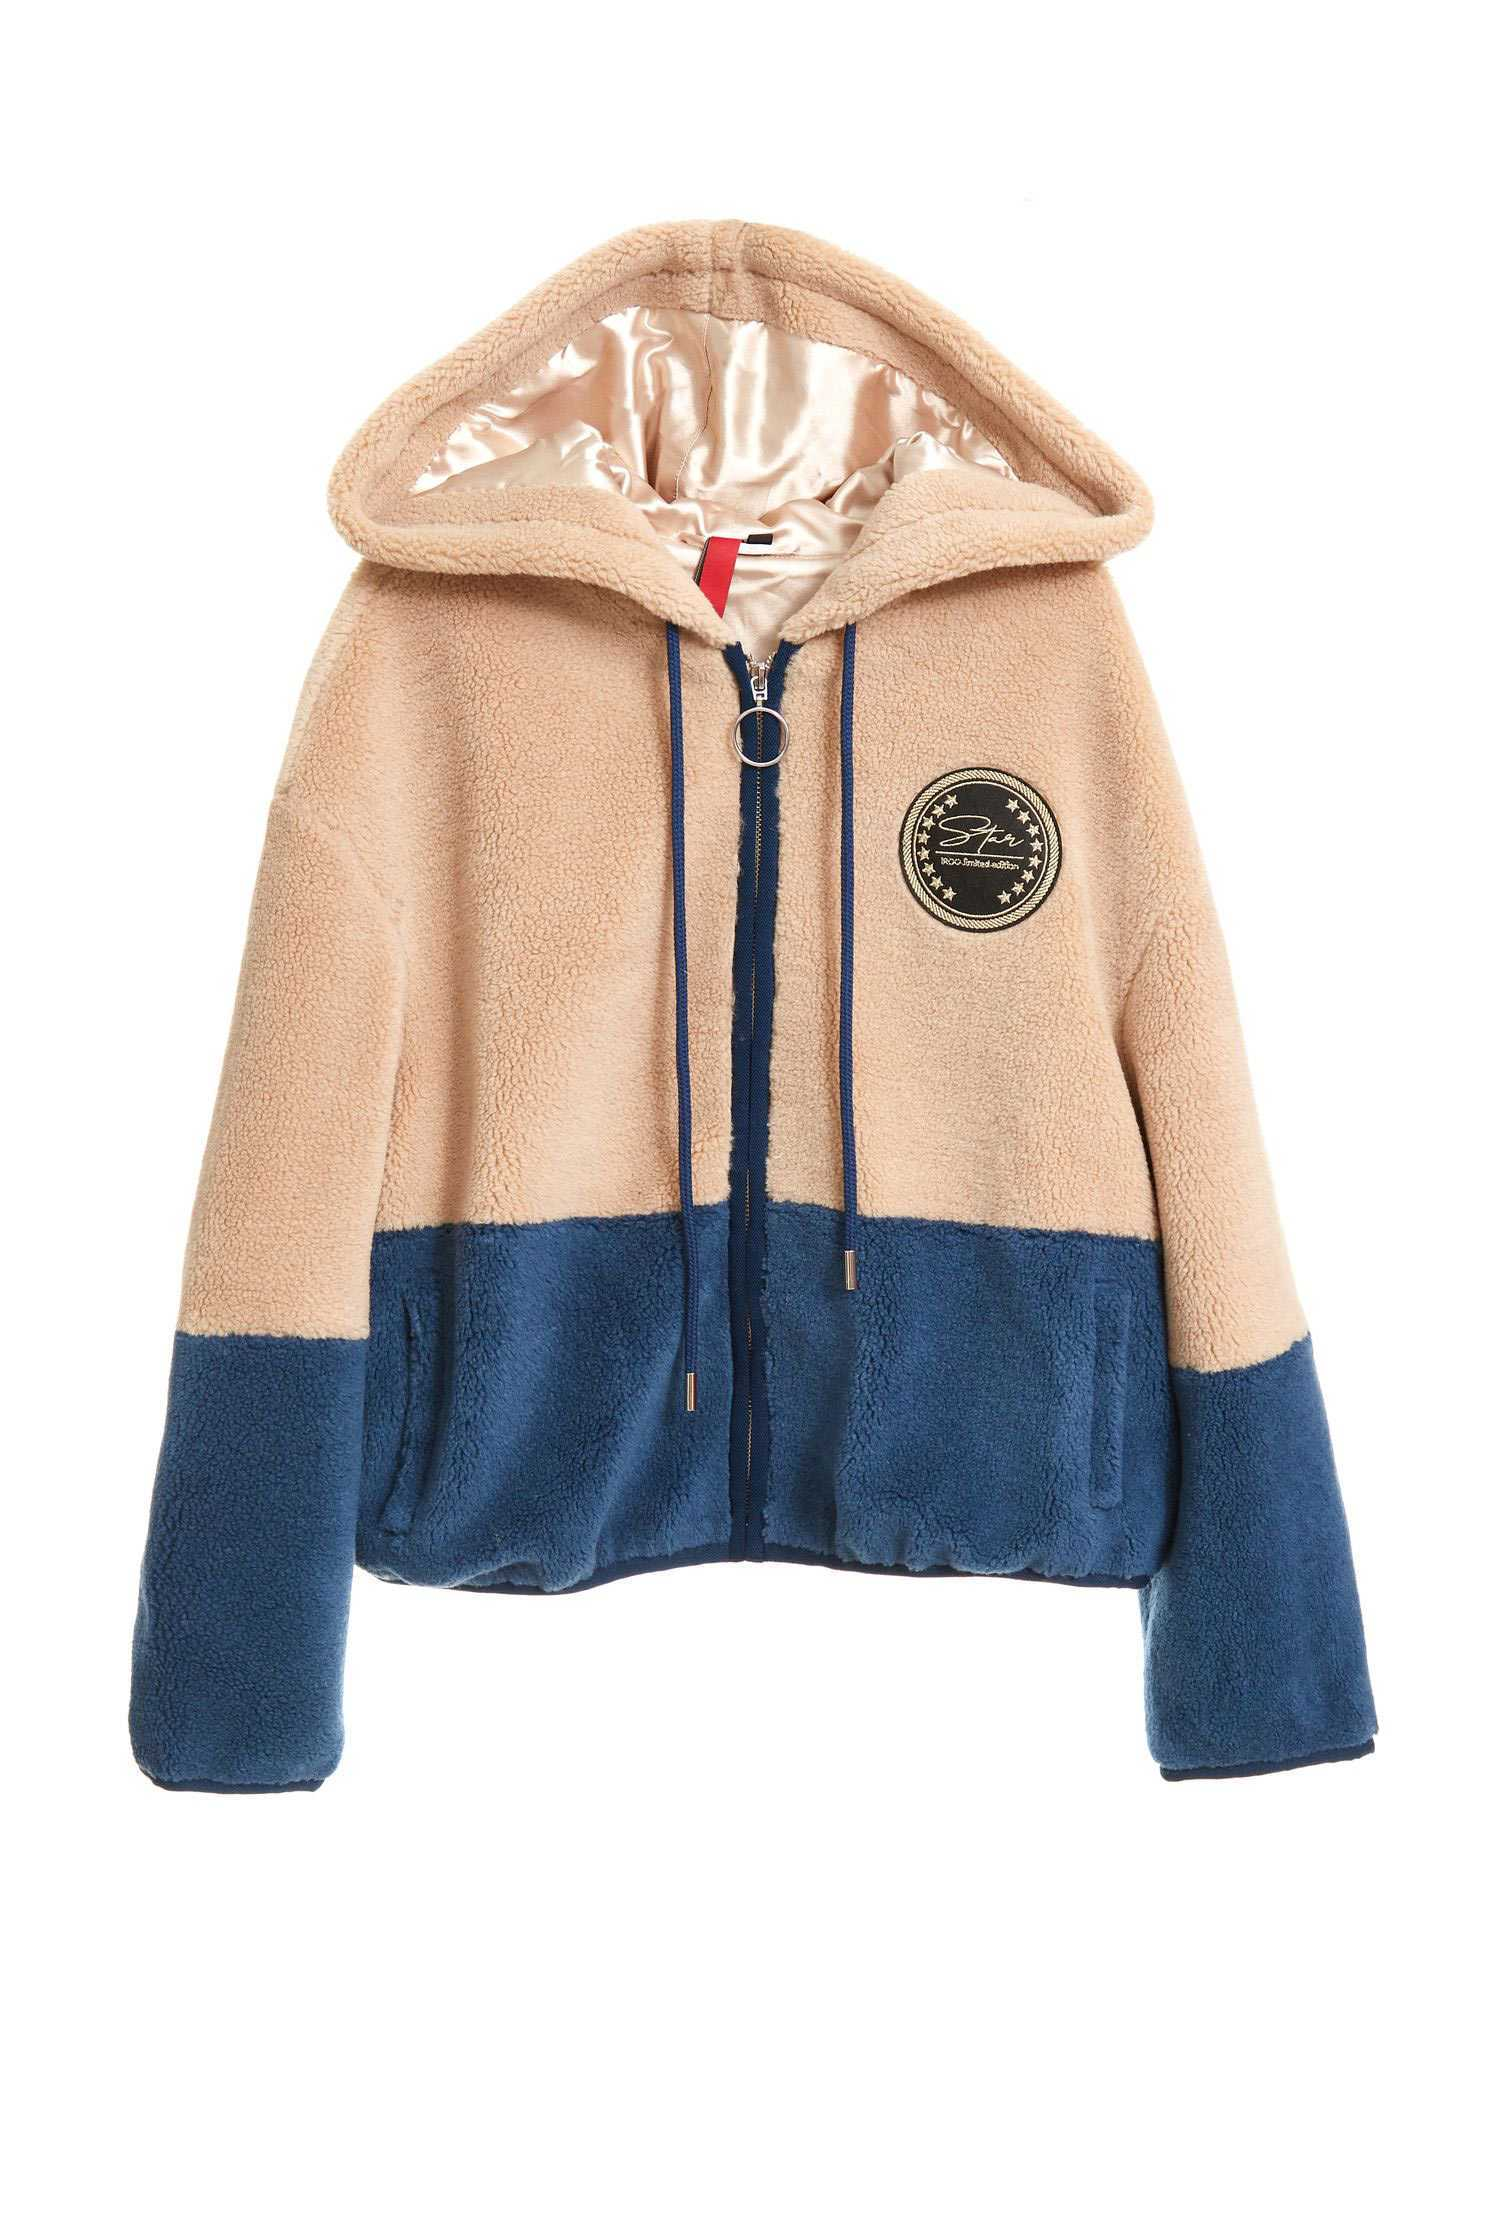 FAUX SHEARLING COAT,COLD FOR WINTER,Earth Signs,外套,Hoodie Jacket,長袖外套